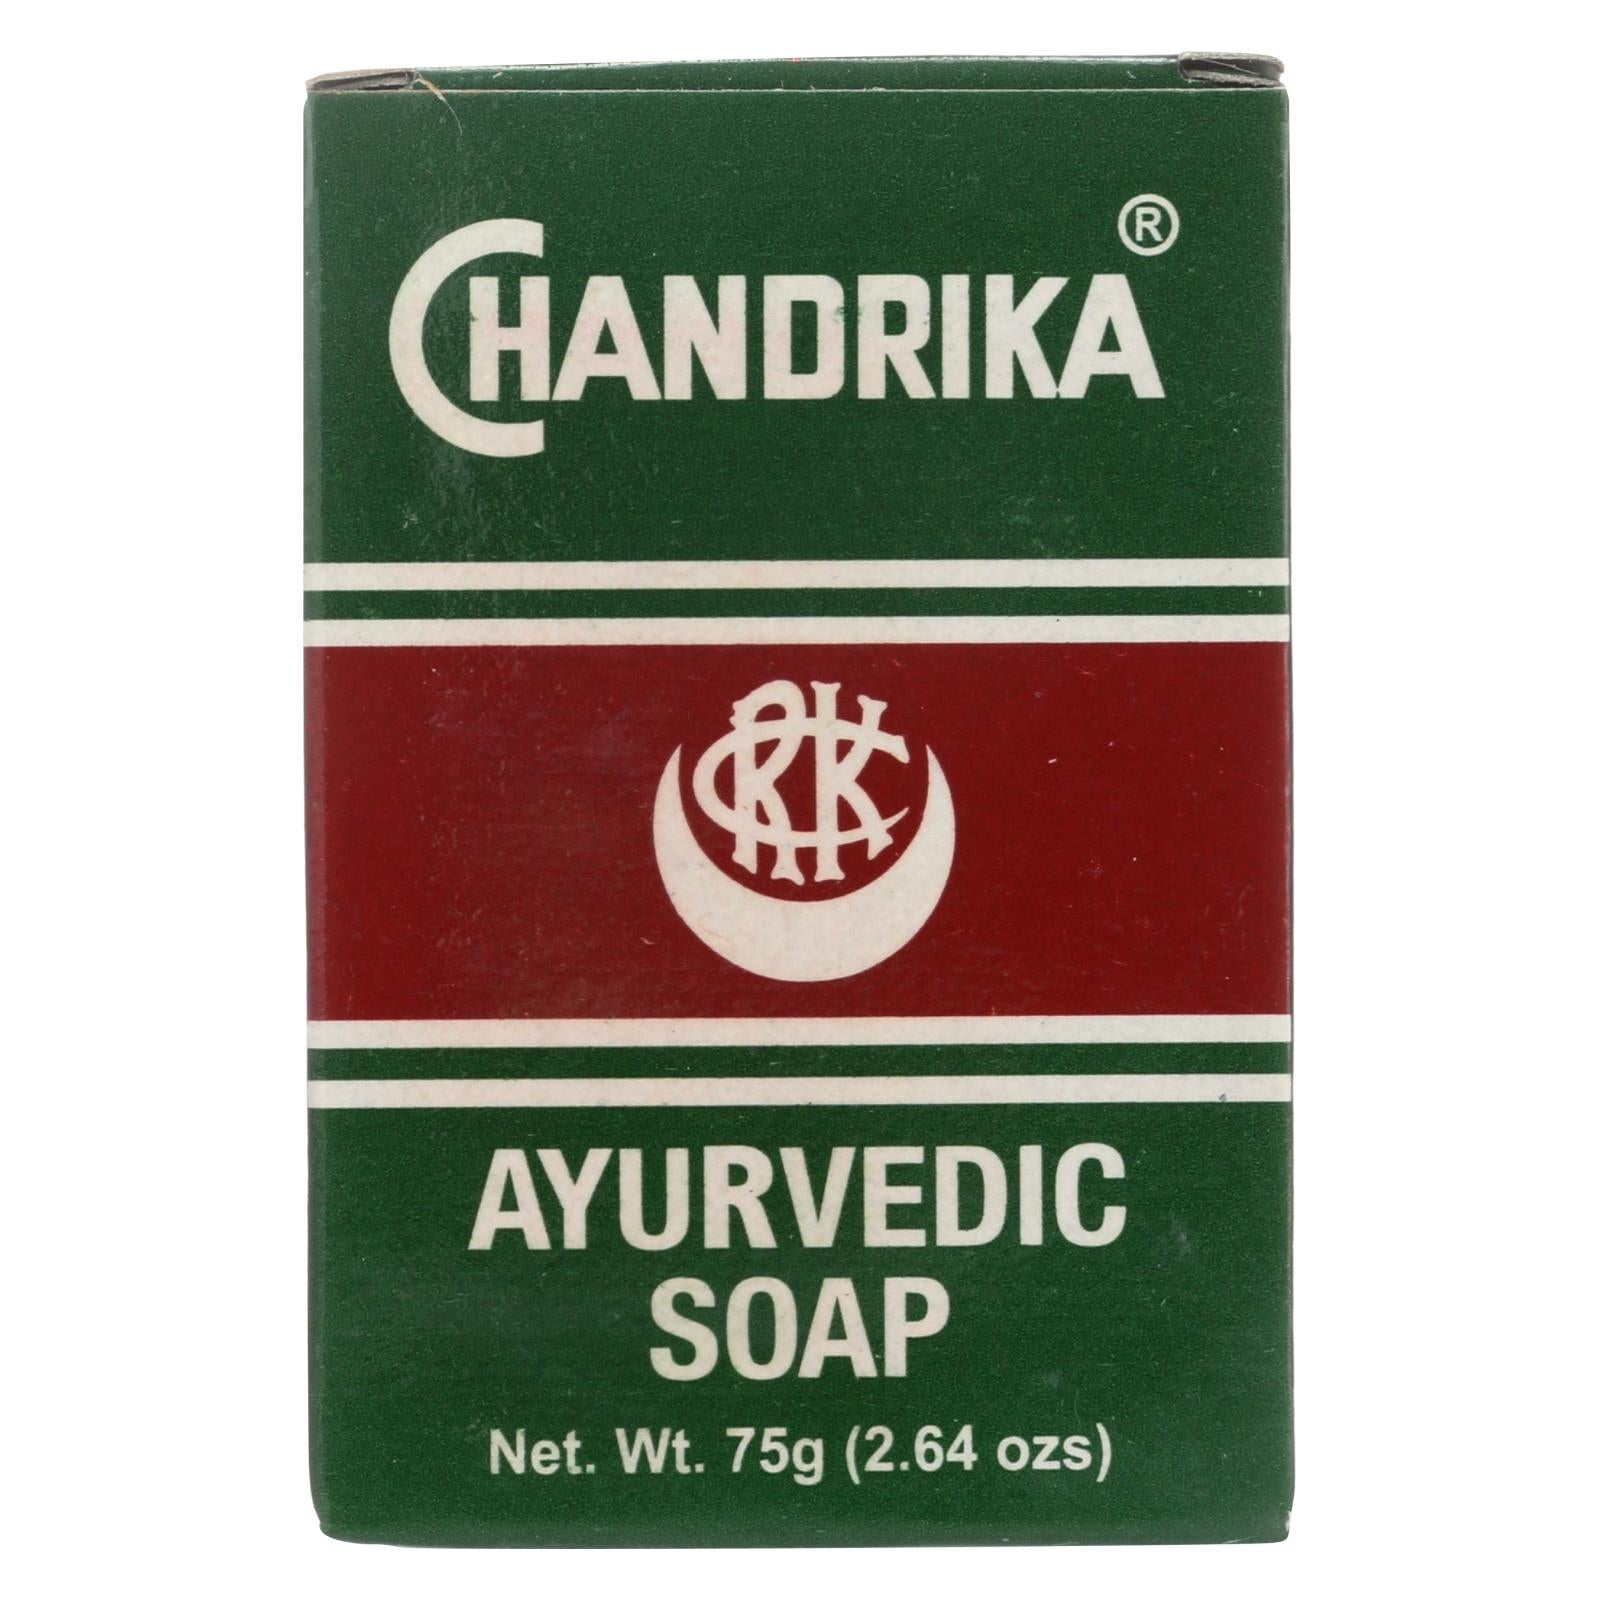 Buy Auromere Bar Soap - Chandrika - 2.64 oz - Bar Soap from Veroeco.com